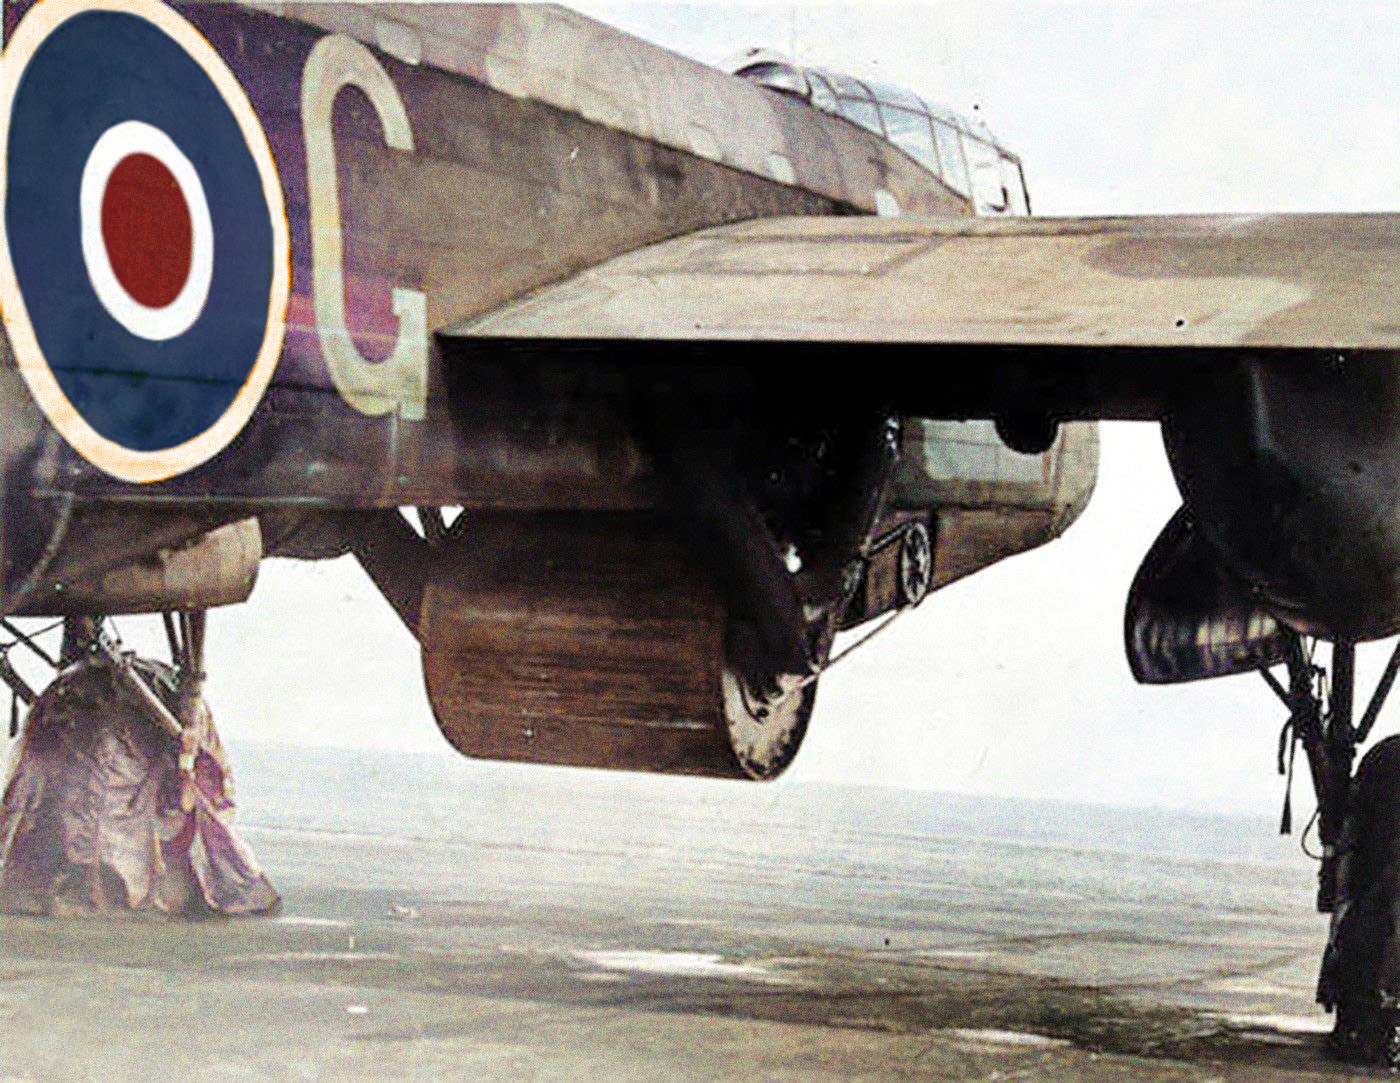 Specially modified Lancasters were designed to carry Upkeep. The bomb was held in place by a pair of calipers (or carrying arms), while backspin was imparted via a belt driven by a hydraulic motor